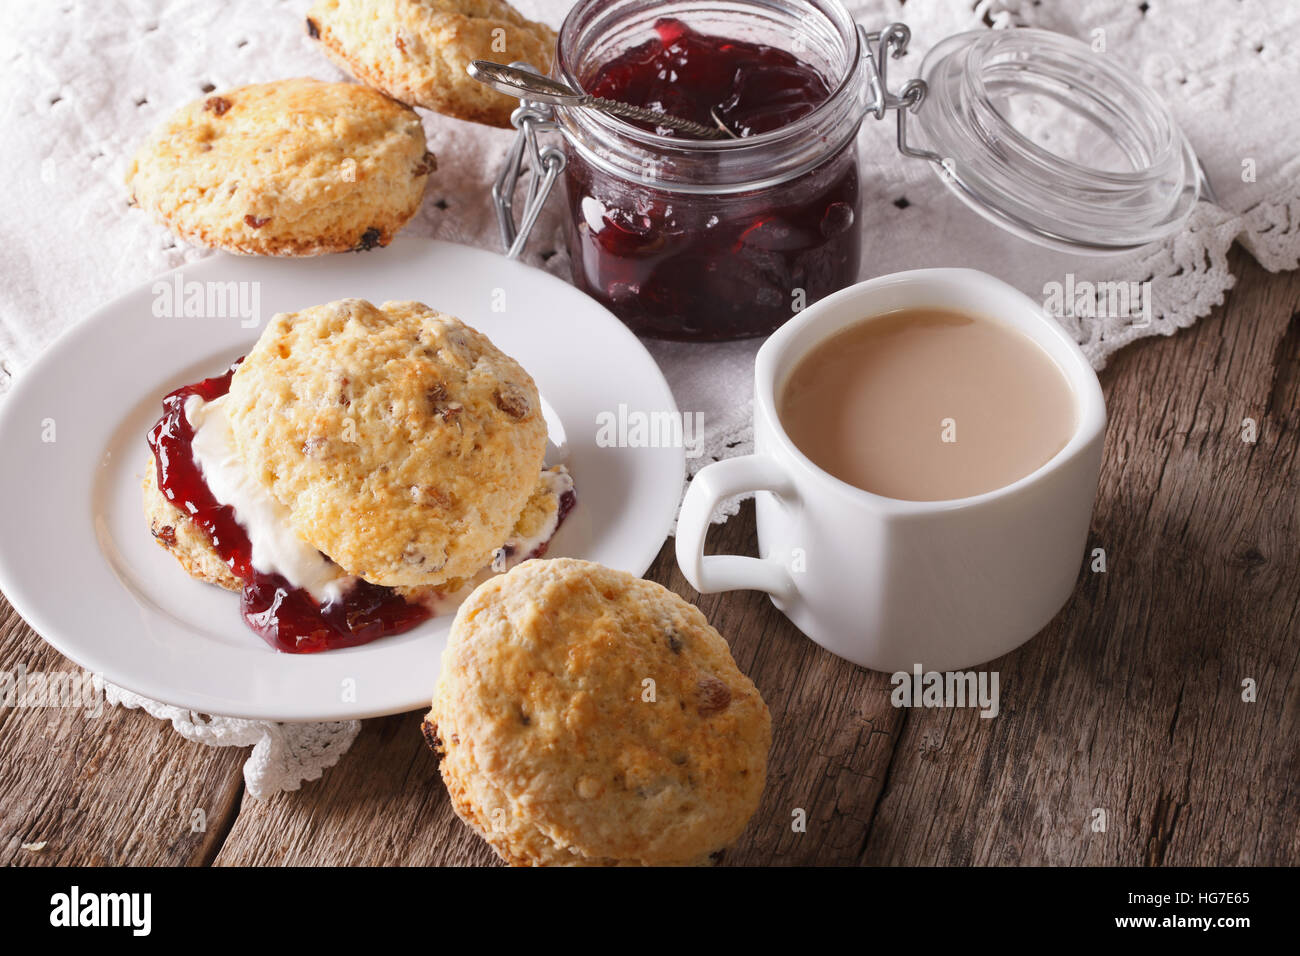 Homemade buns with jam and tea with milk close-up on the table. horizontal - Stock Image